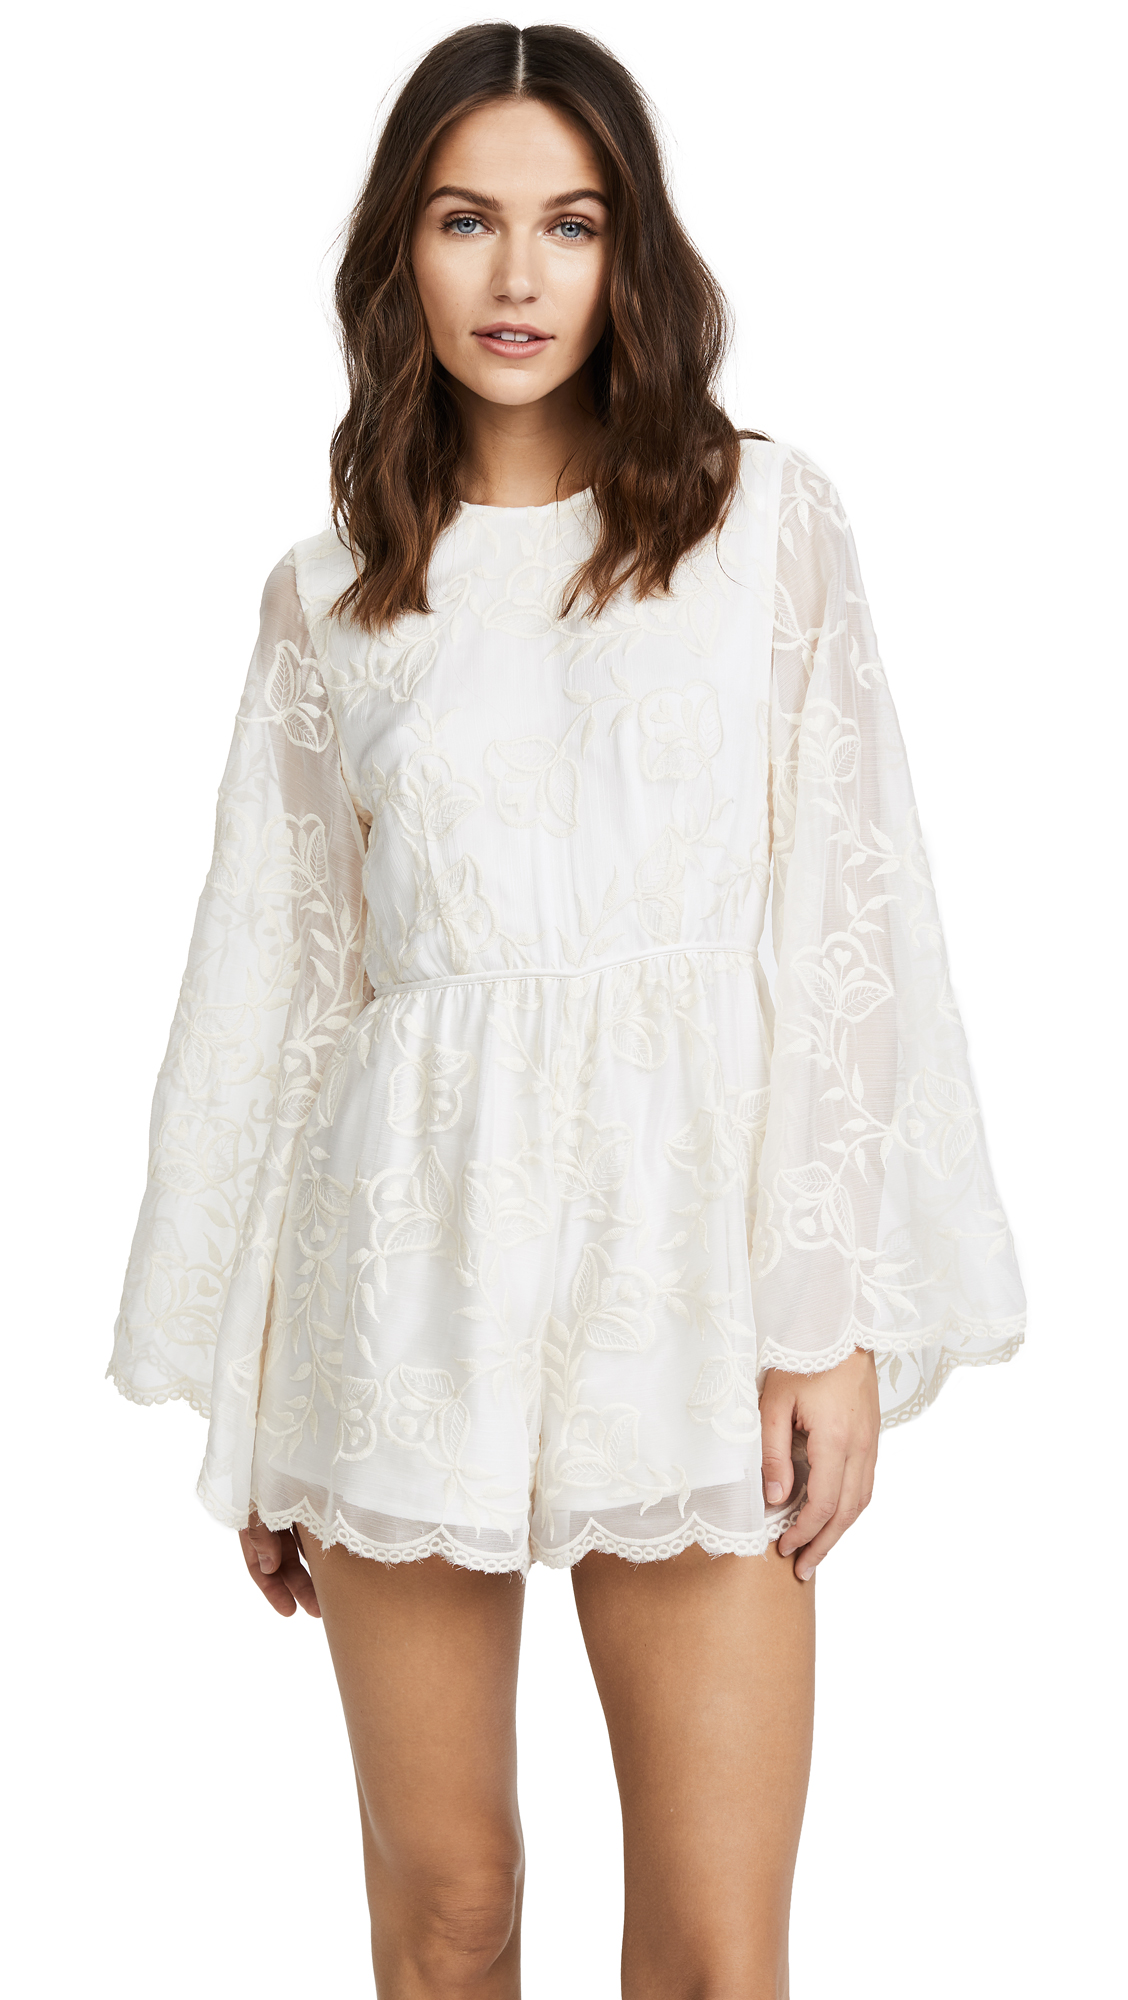 Stevie May Redefining Embroidered Playsuit - White